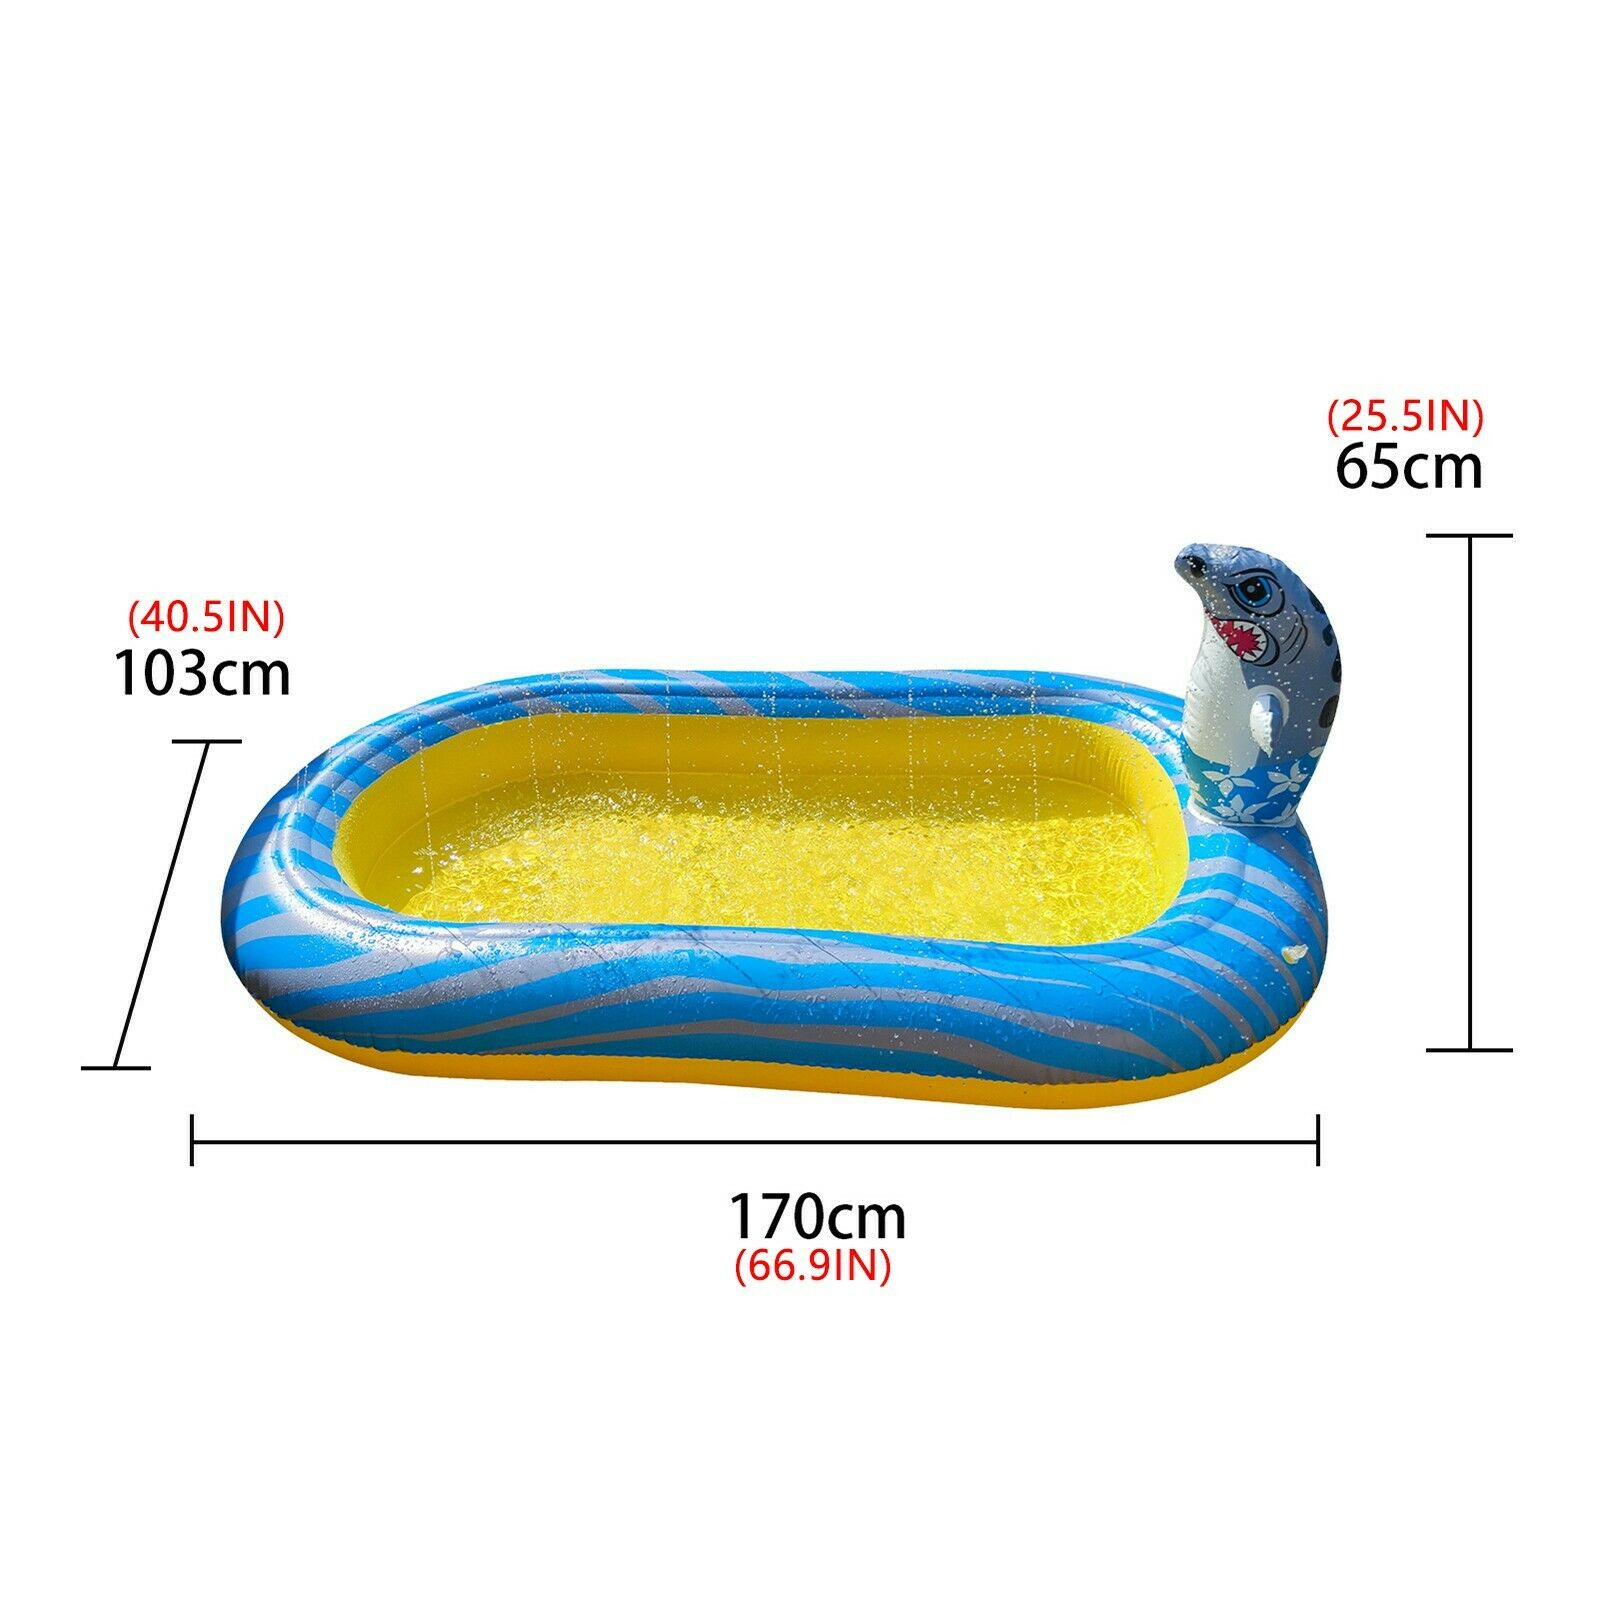 Inflatable Dinosaur Outdoor Play Pool Children's Indoor Swimming Pool Beach Toys